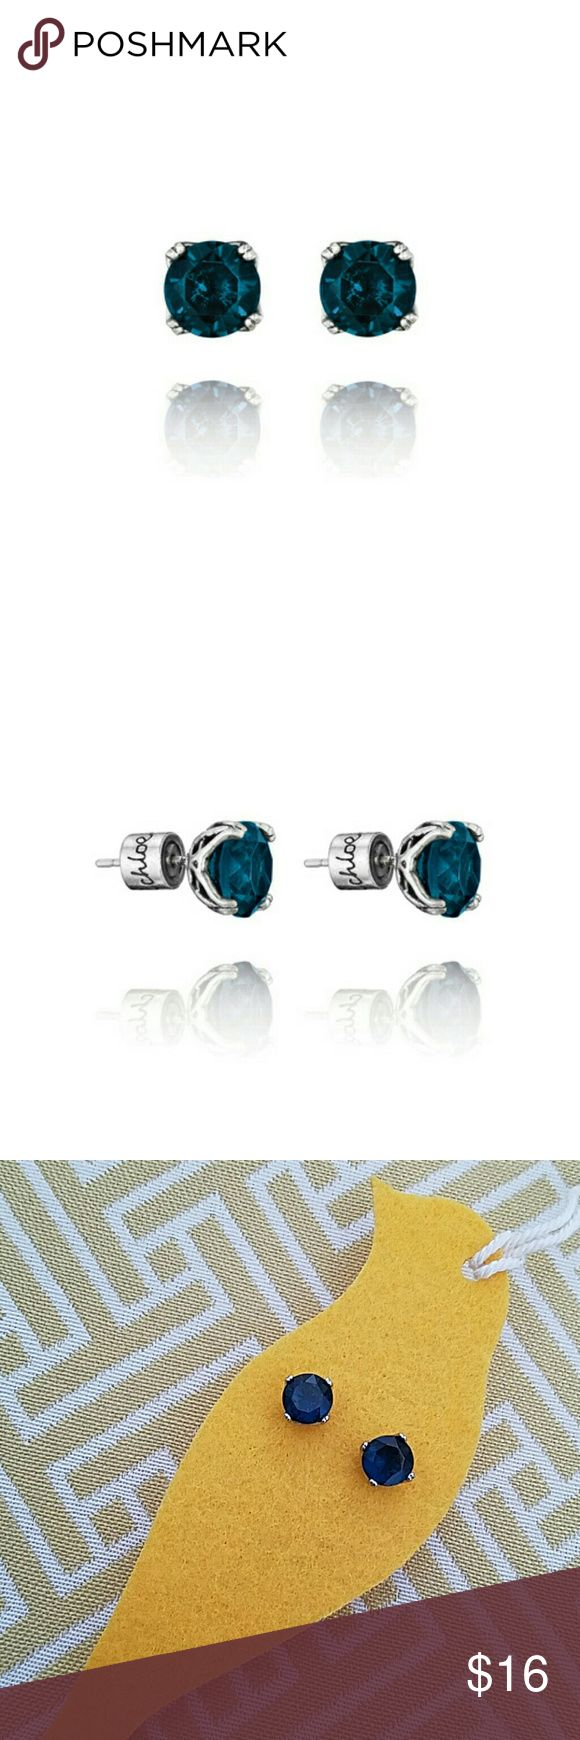 C+ I Sapphire Stud Earrings Antique Rhodium Plating With Sapphire Glass  Stainless Steel Post